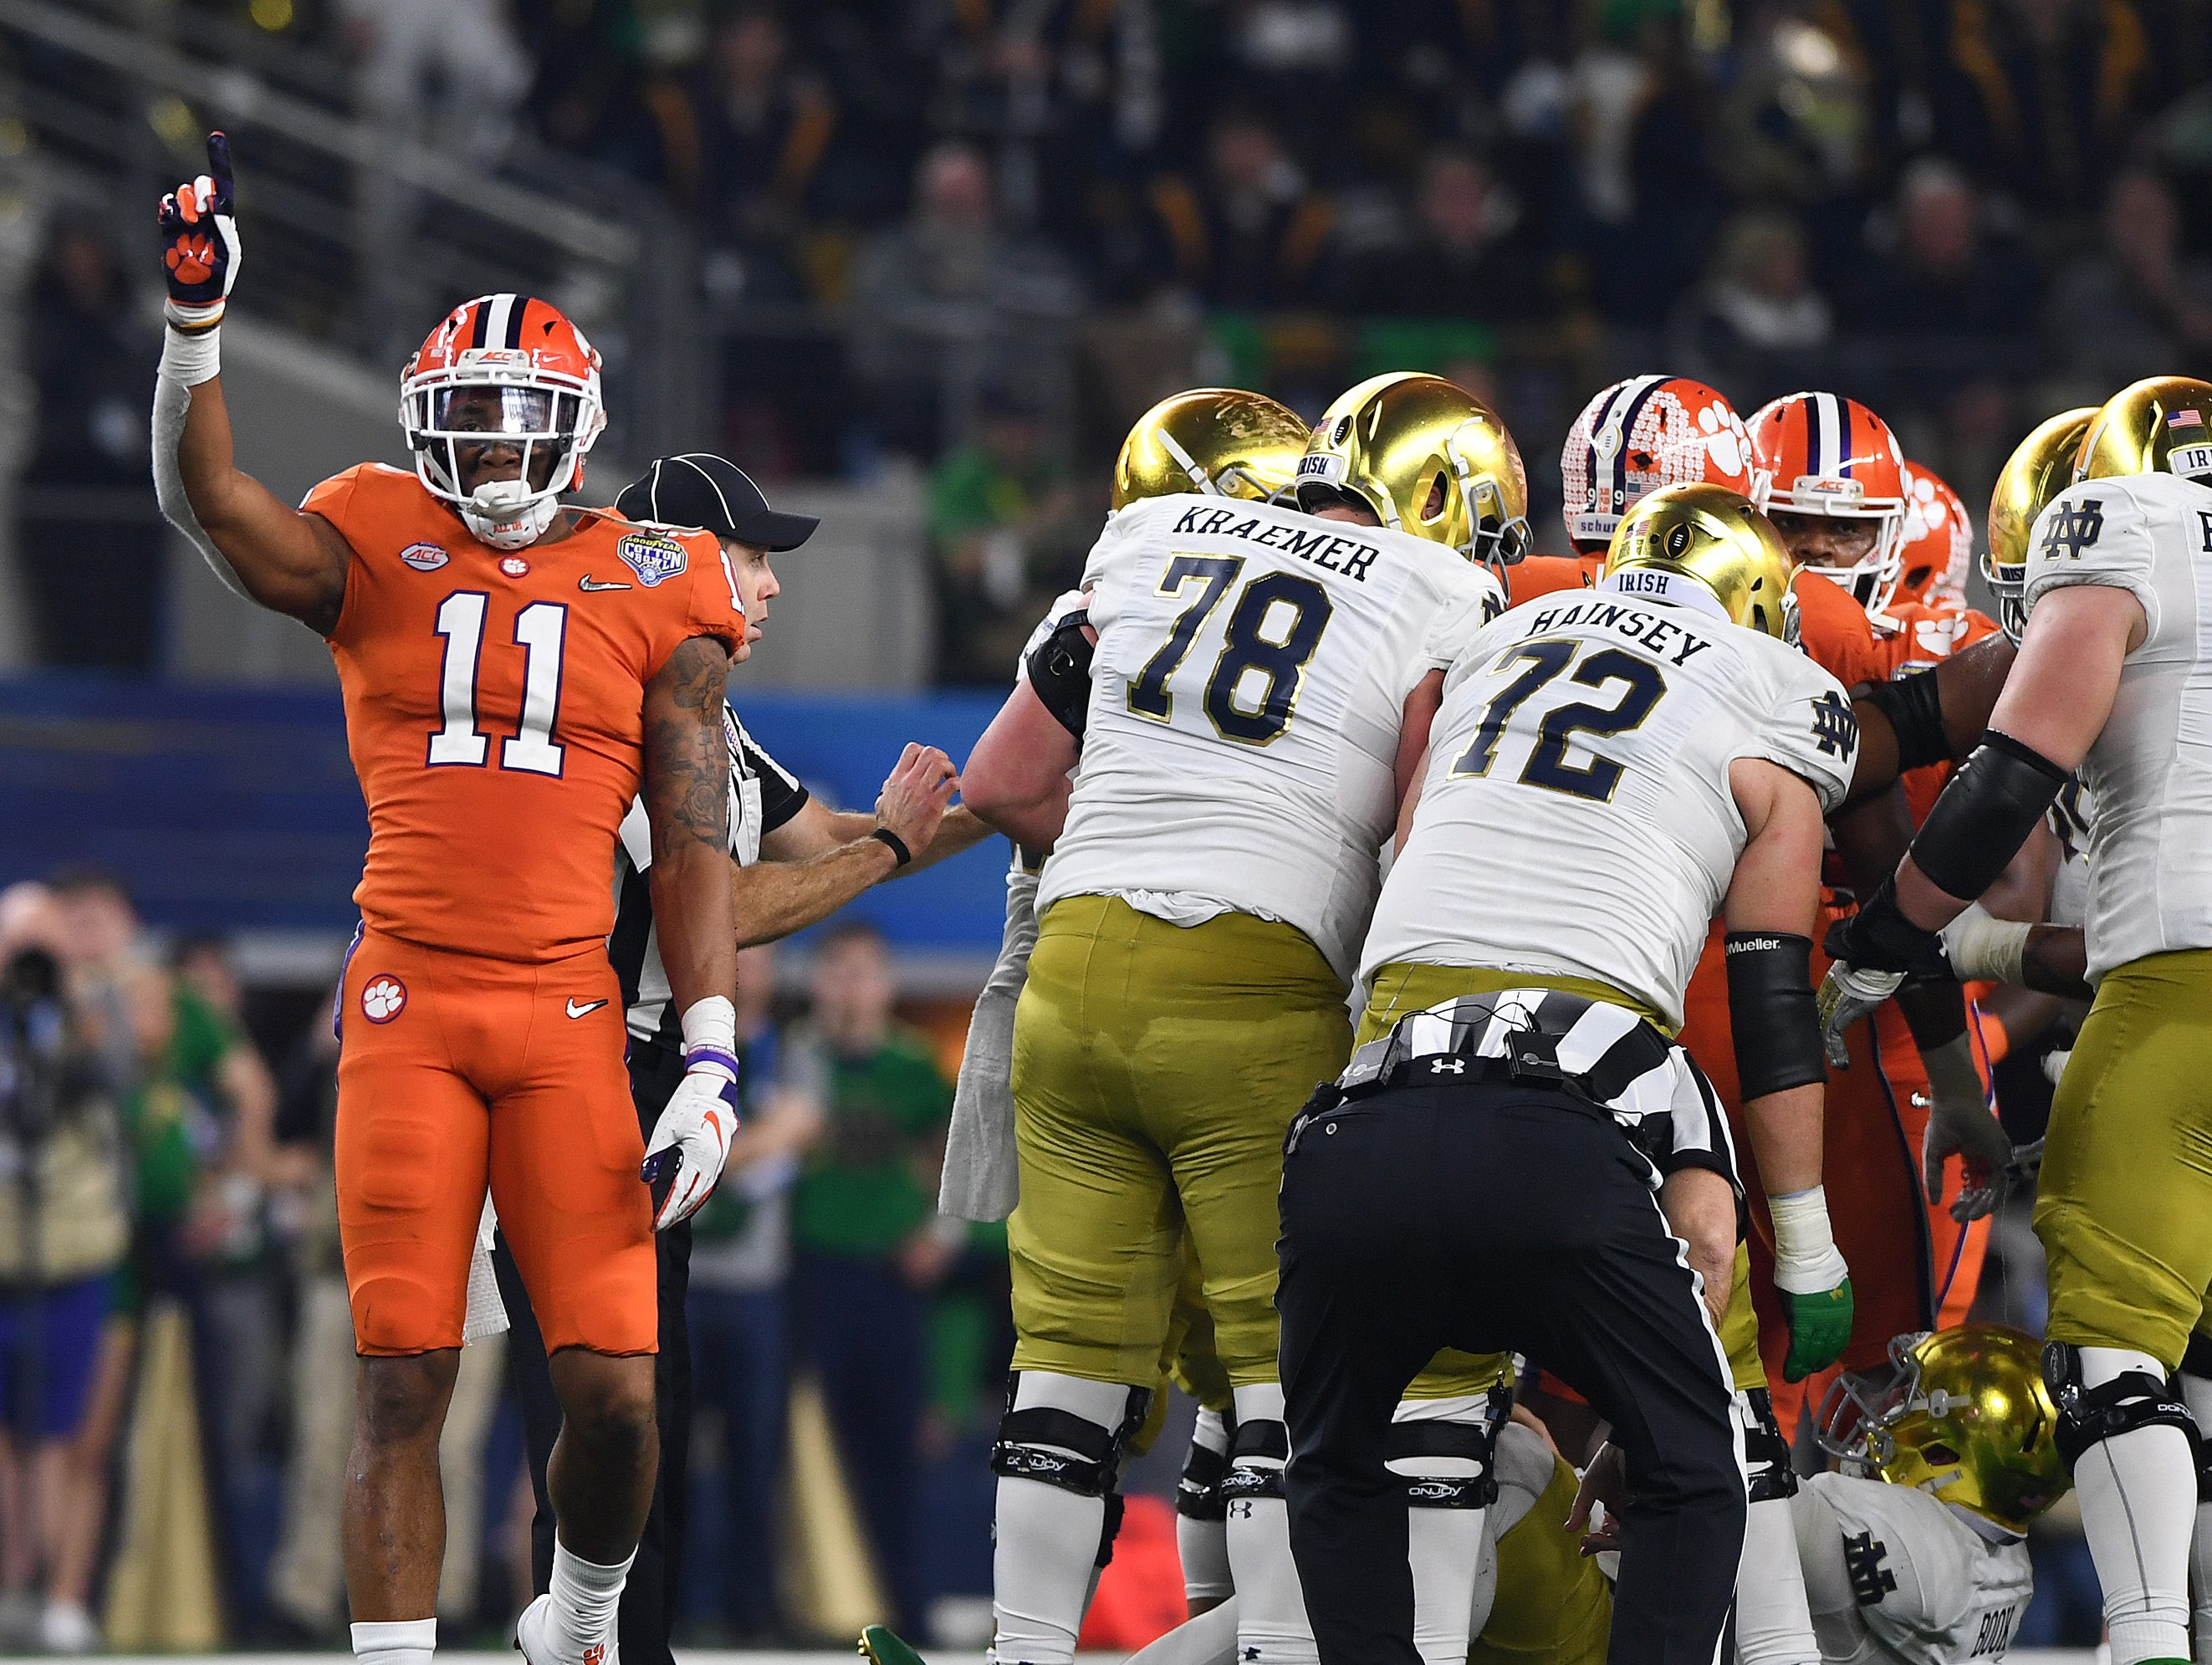 Clemson safety Isaiah Simmons (11) reacts after a defensive stop against Notre Dame during the 3rd quarter of the Goodyear Cotton Bowl at AT&T stadium in Arlington, TX Saturday, December 29, 2018.